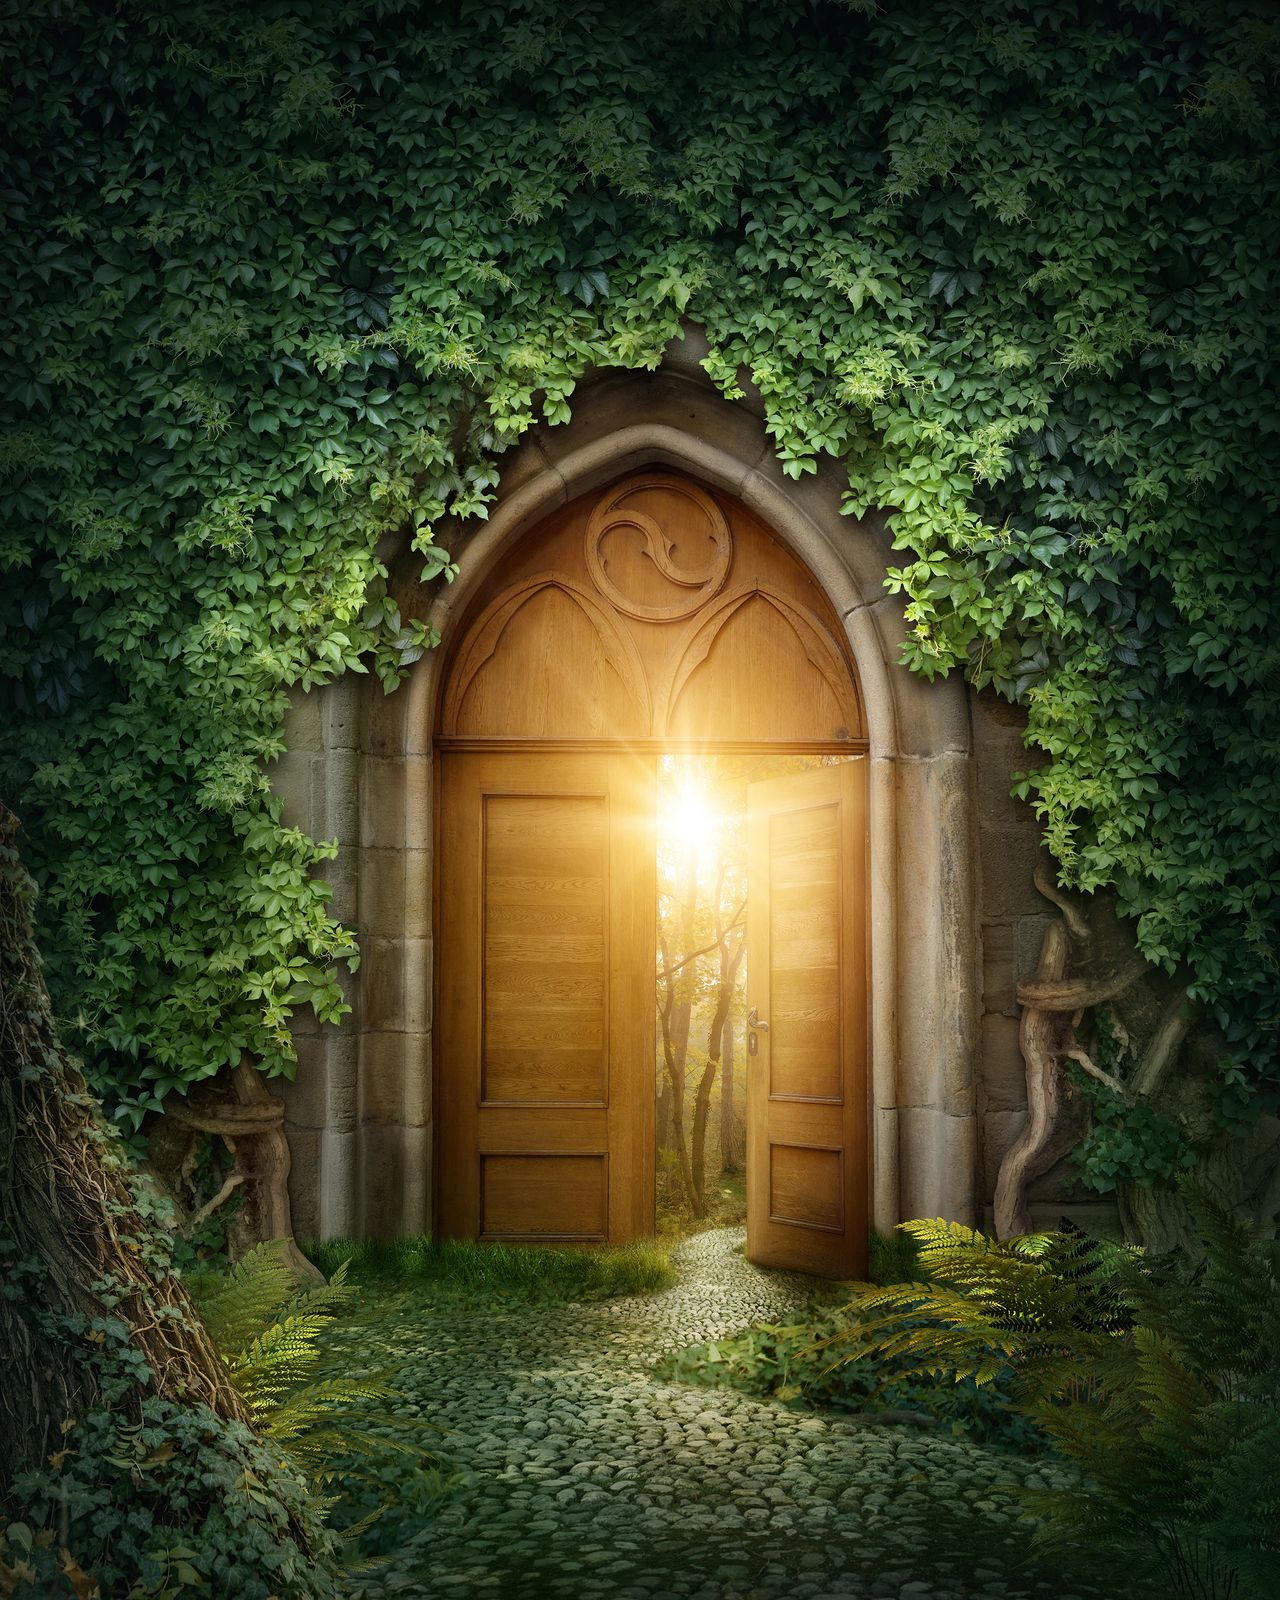 The Magical Fairy Doors Fantasy house, Background for